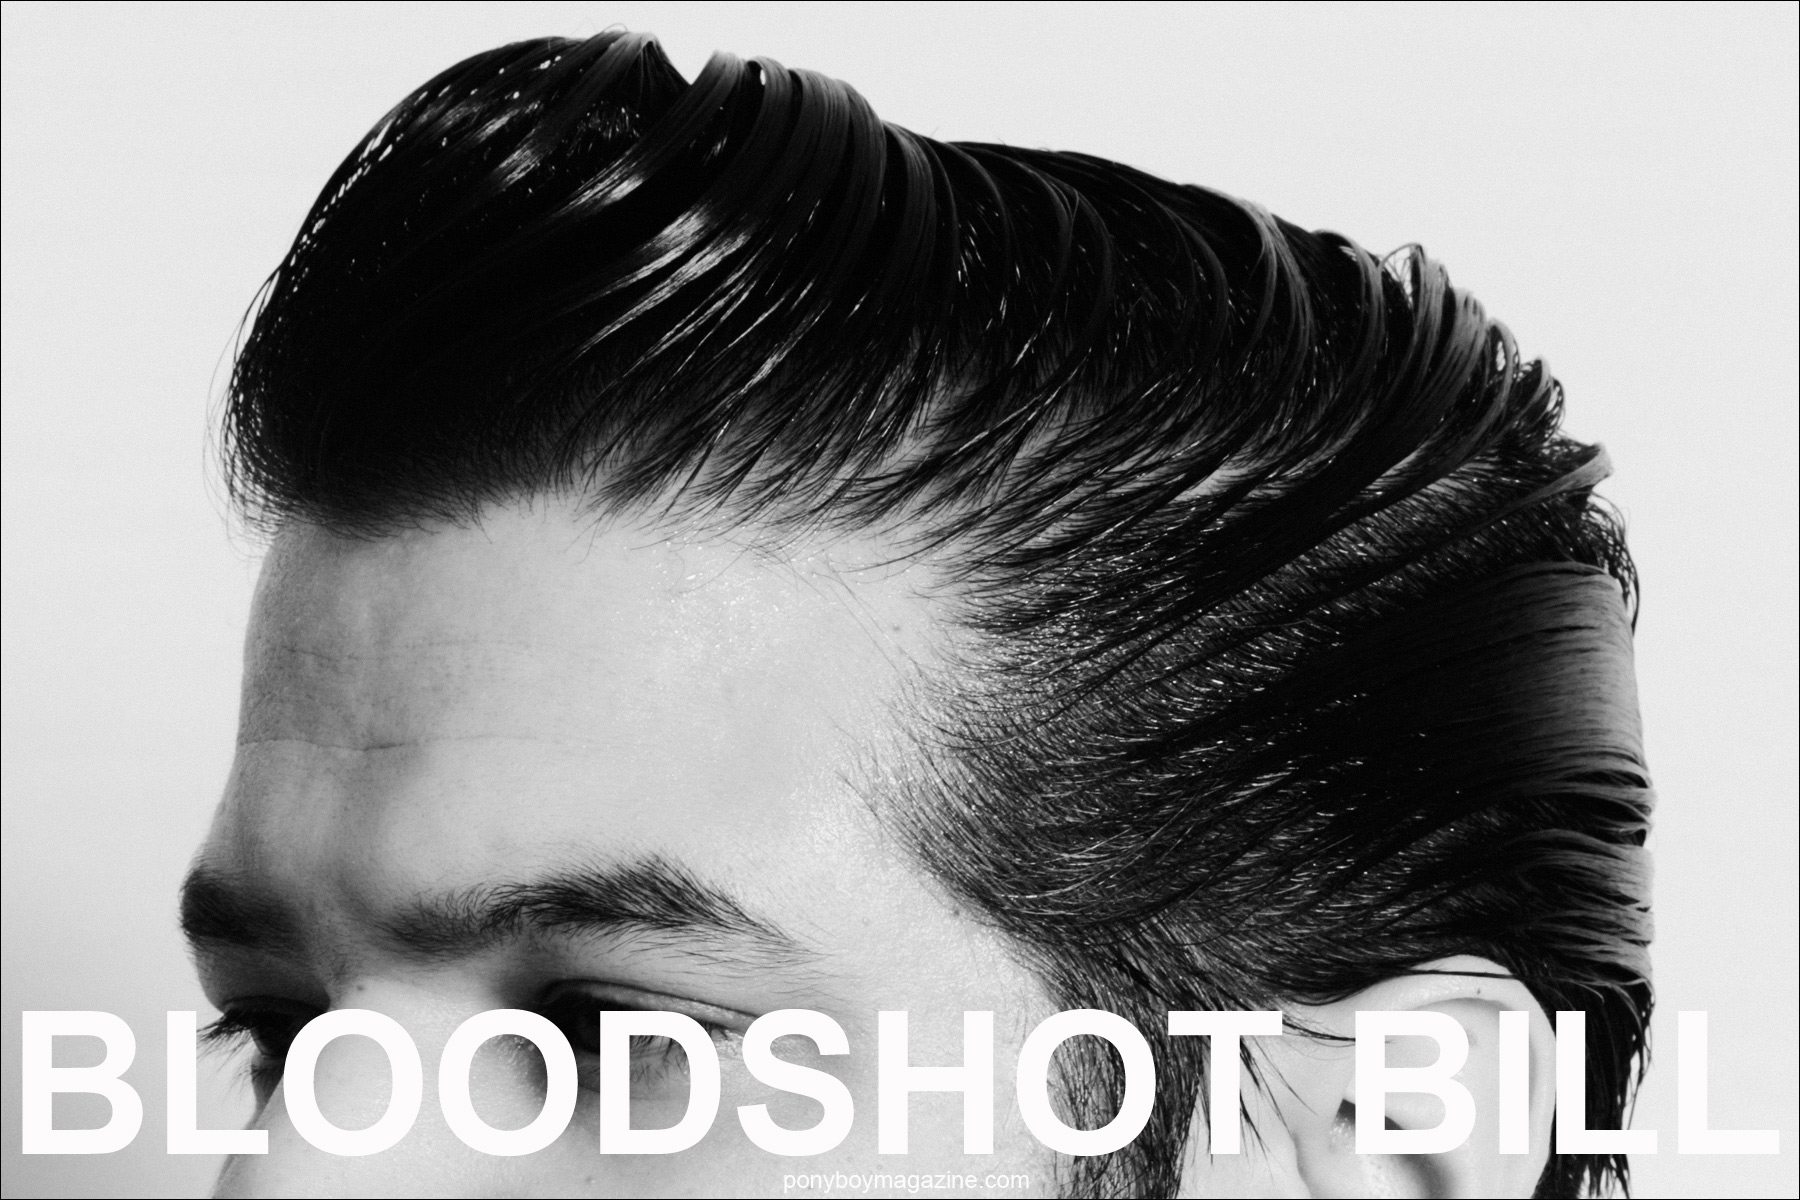 Close-up image of Bloodshot Bill pompadour by Alexander Thompson for Ponyboy Magazine.